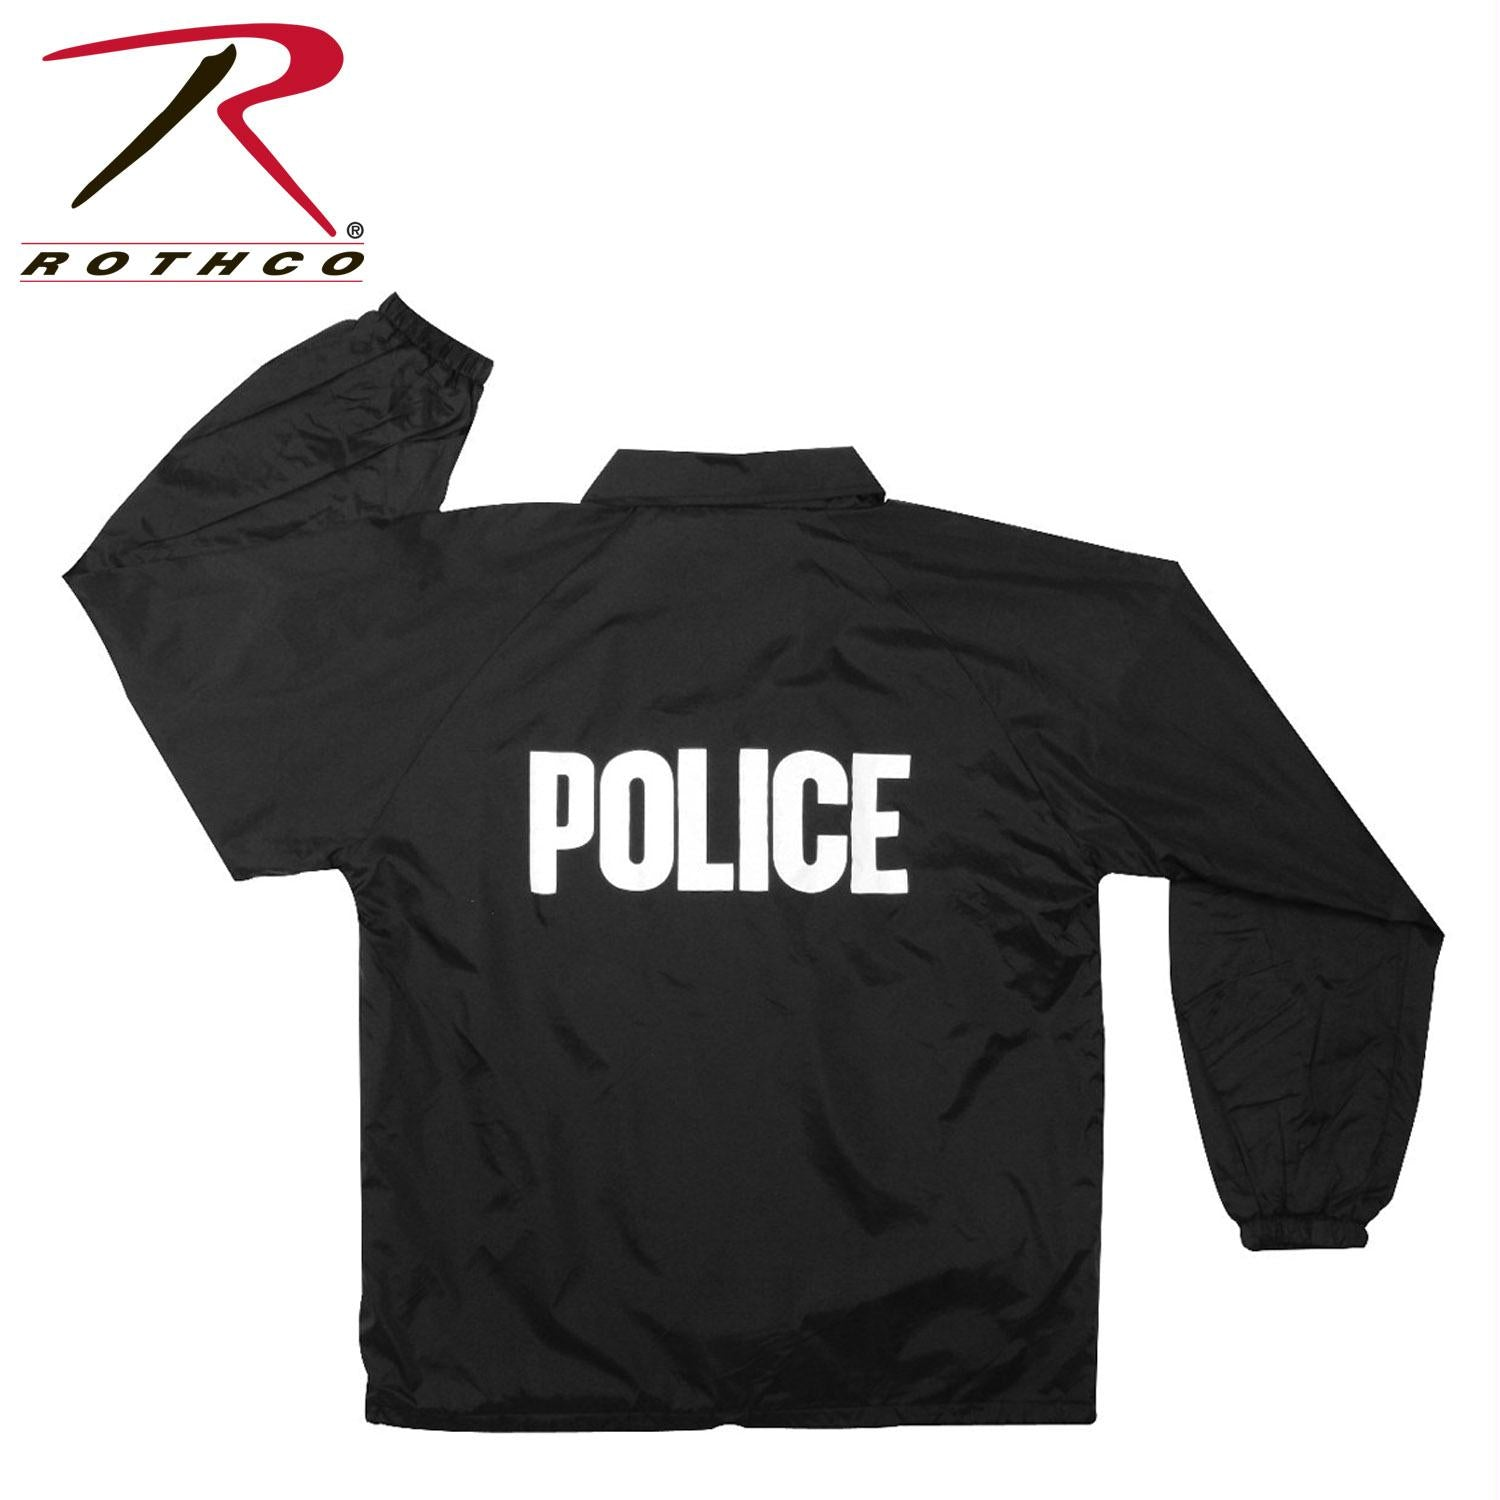 Rothco Lined Coaches Police Jacket - S